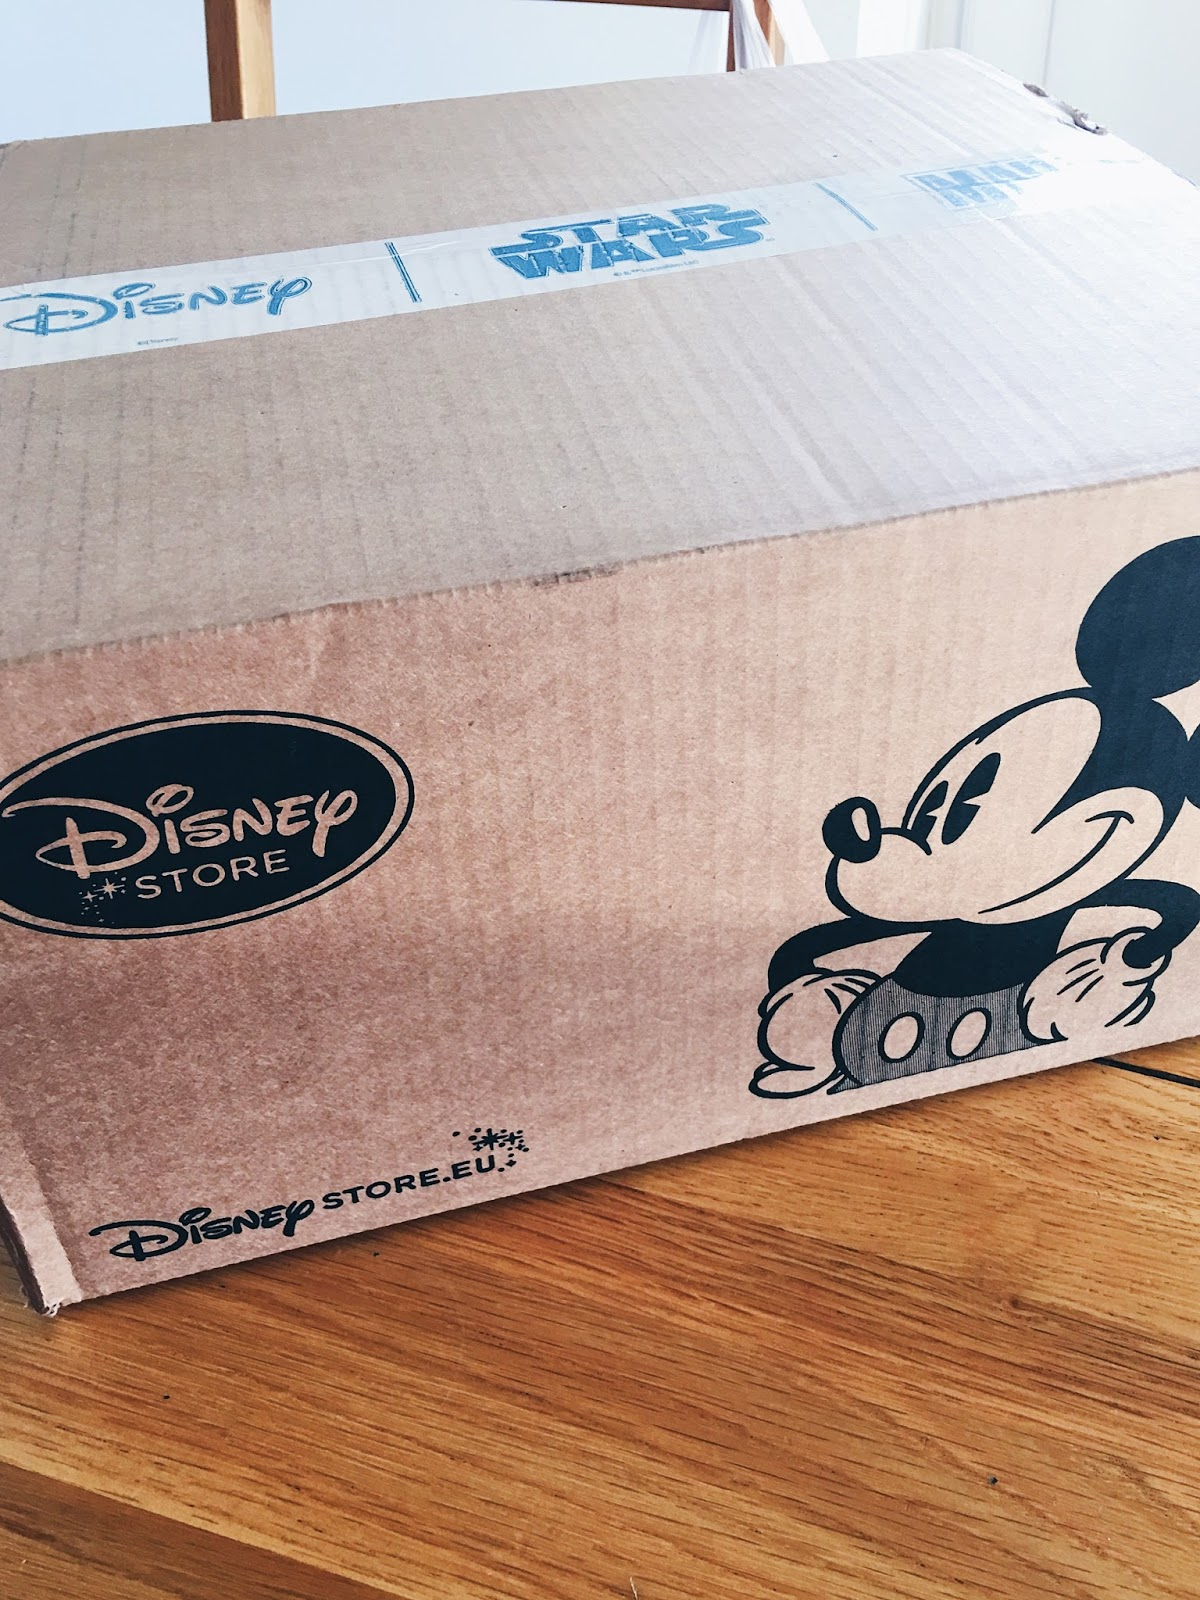 Disney Store Shipping Cardboard Box on Wooden Table